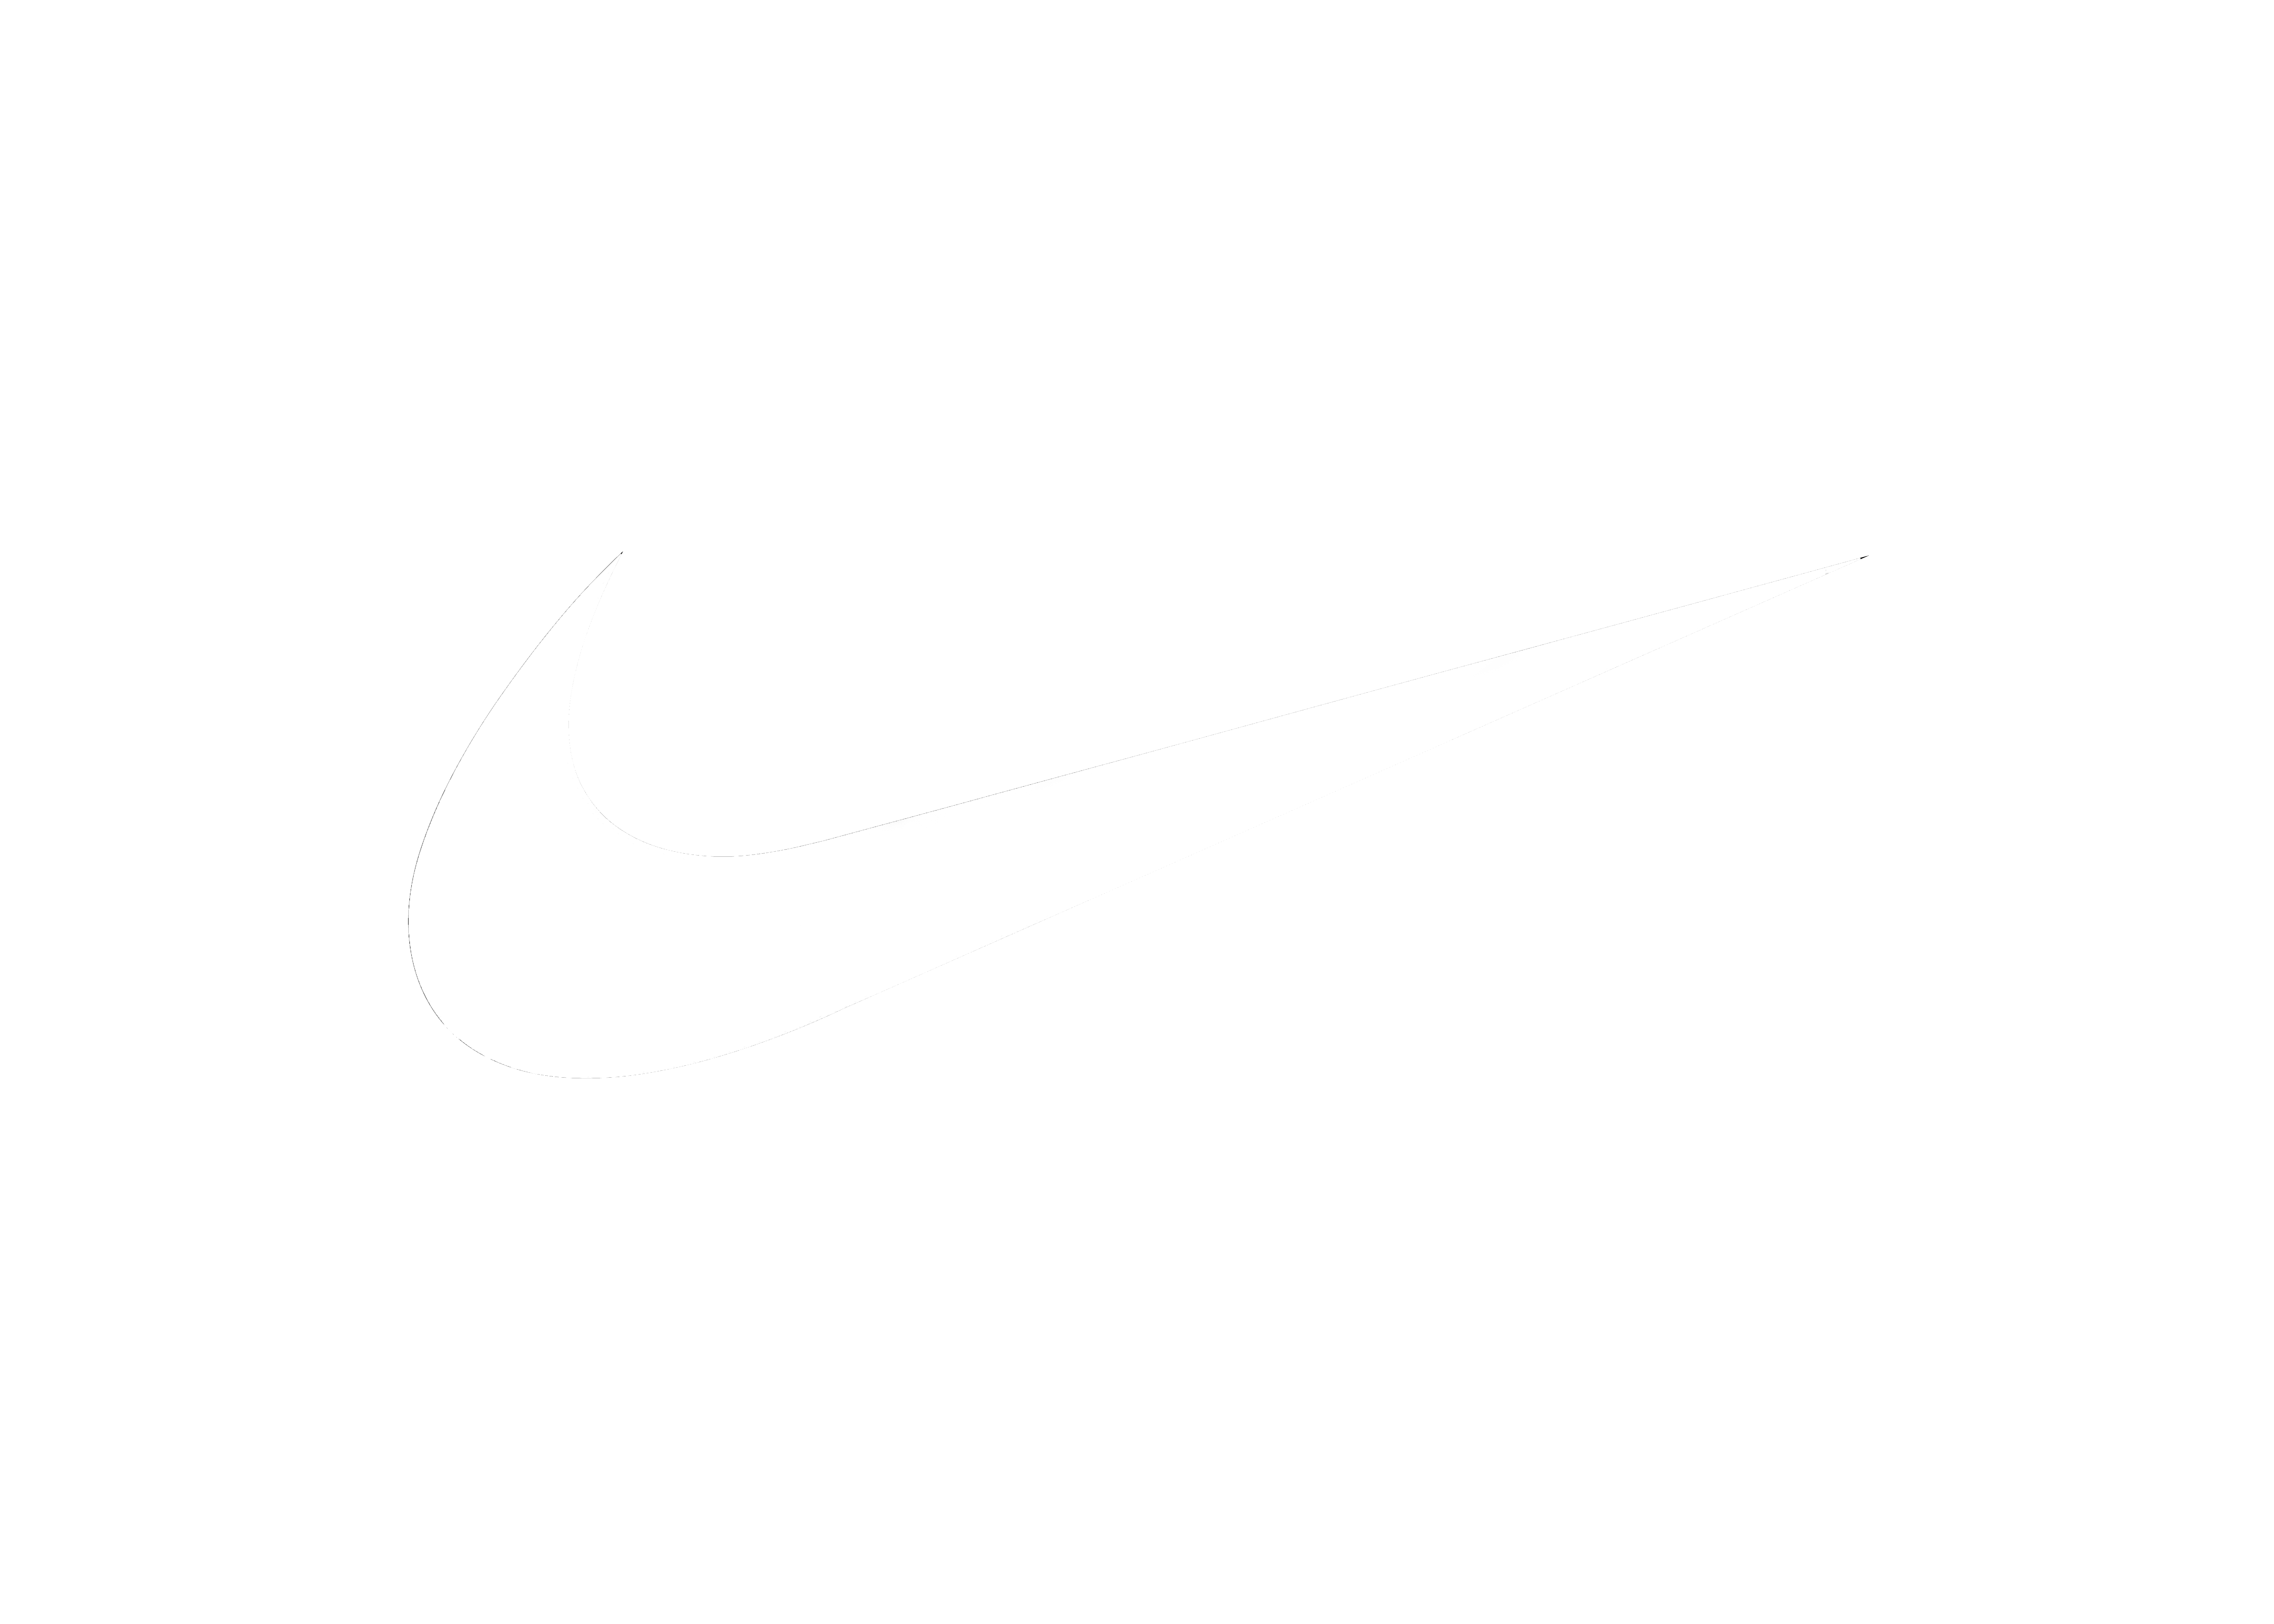 White Nike Logo Transparent Background | Background Ideas